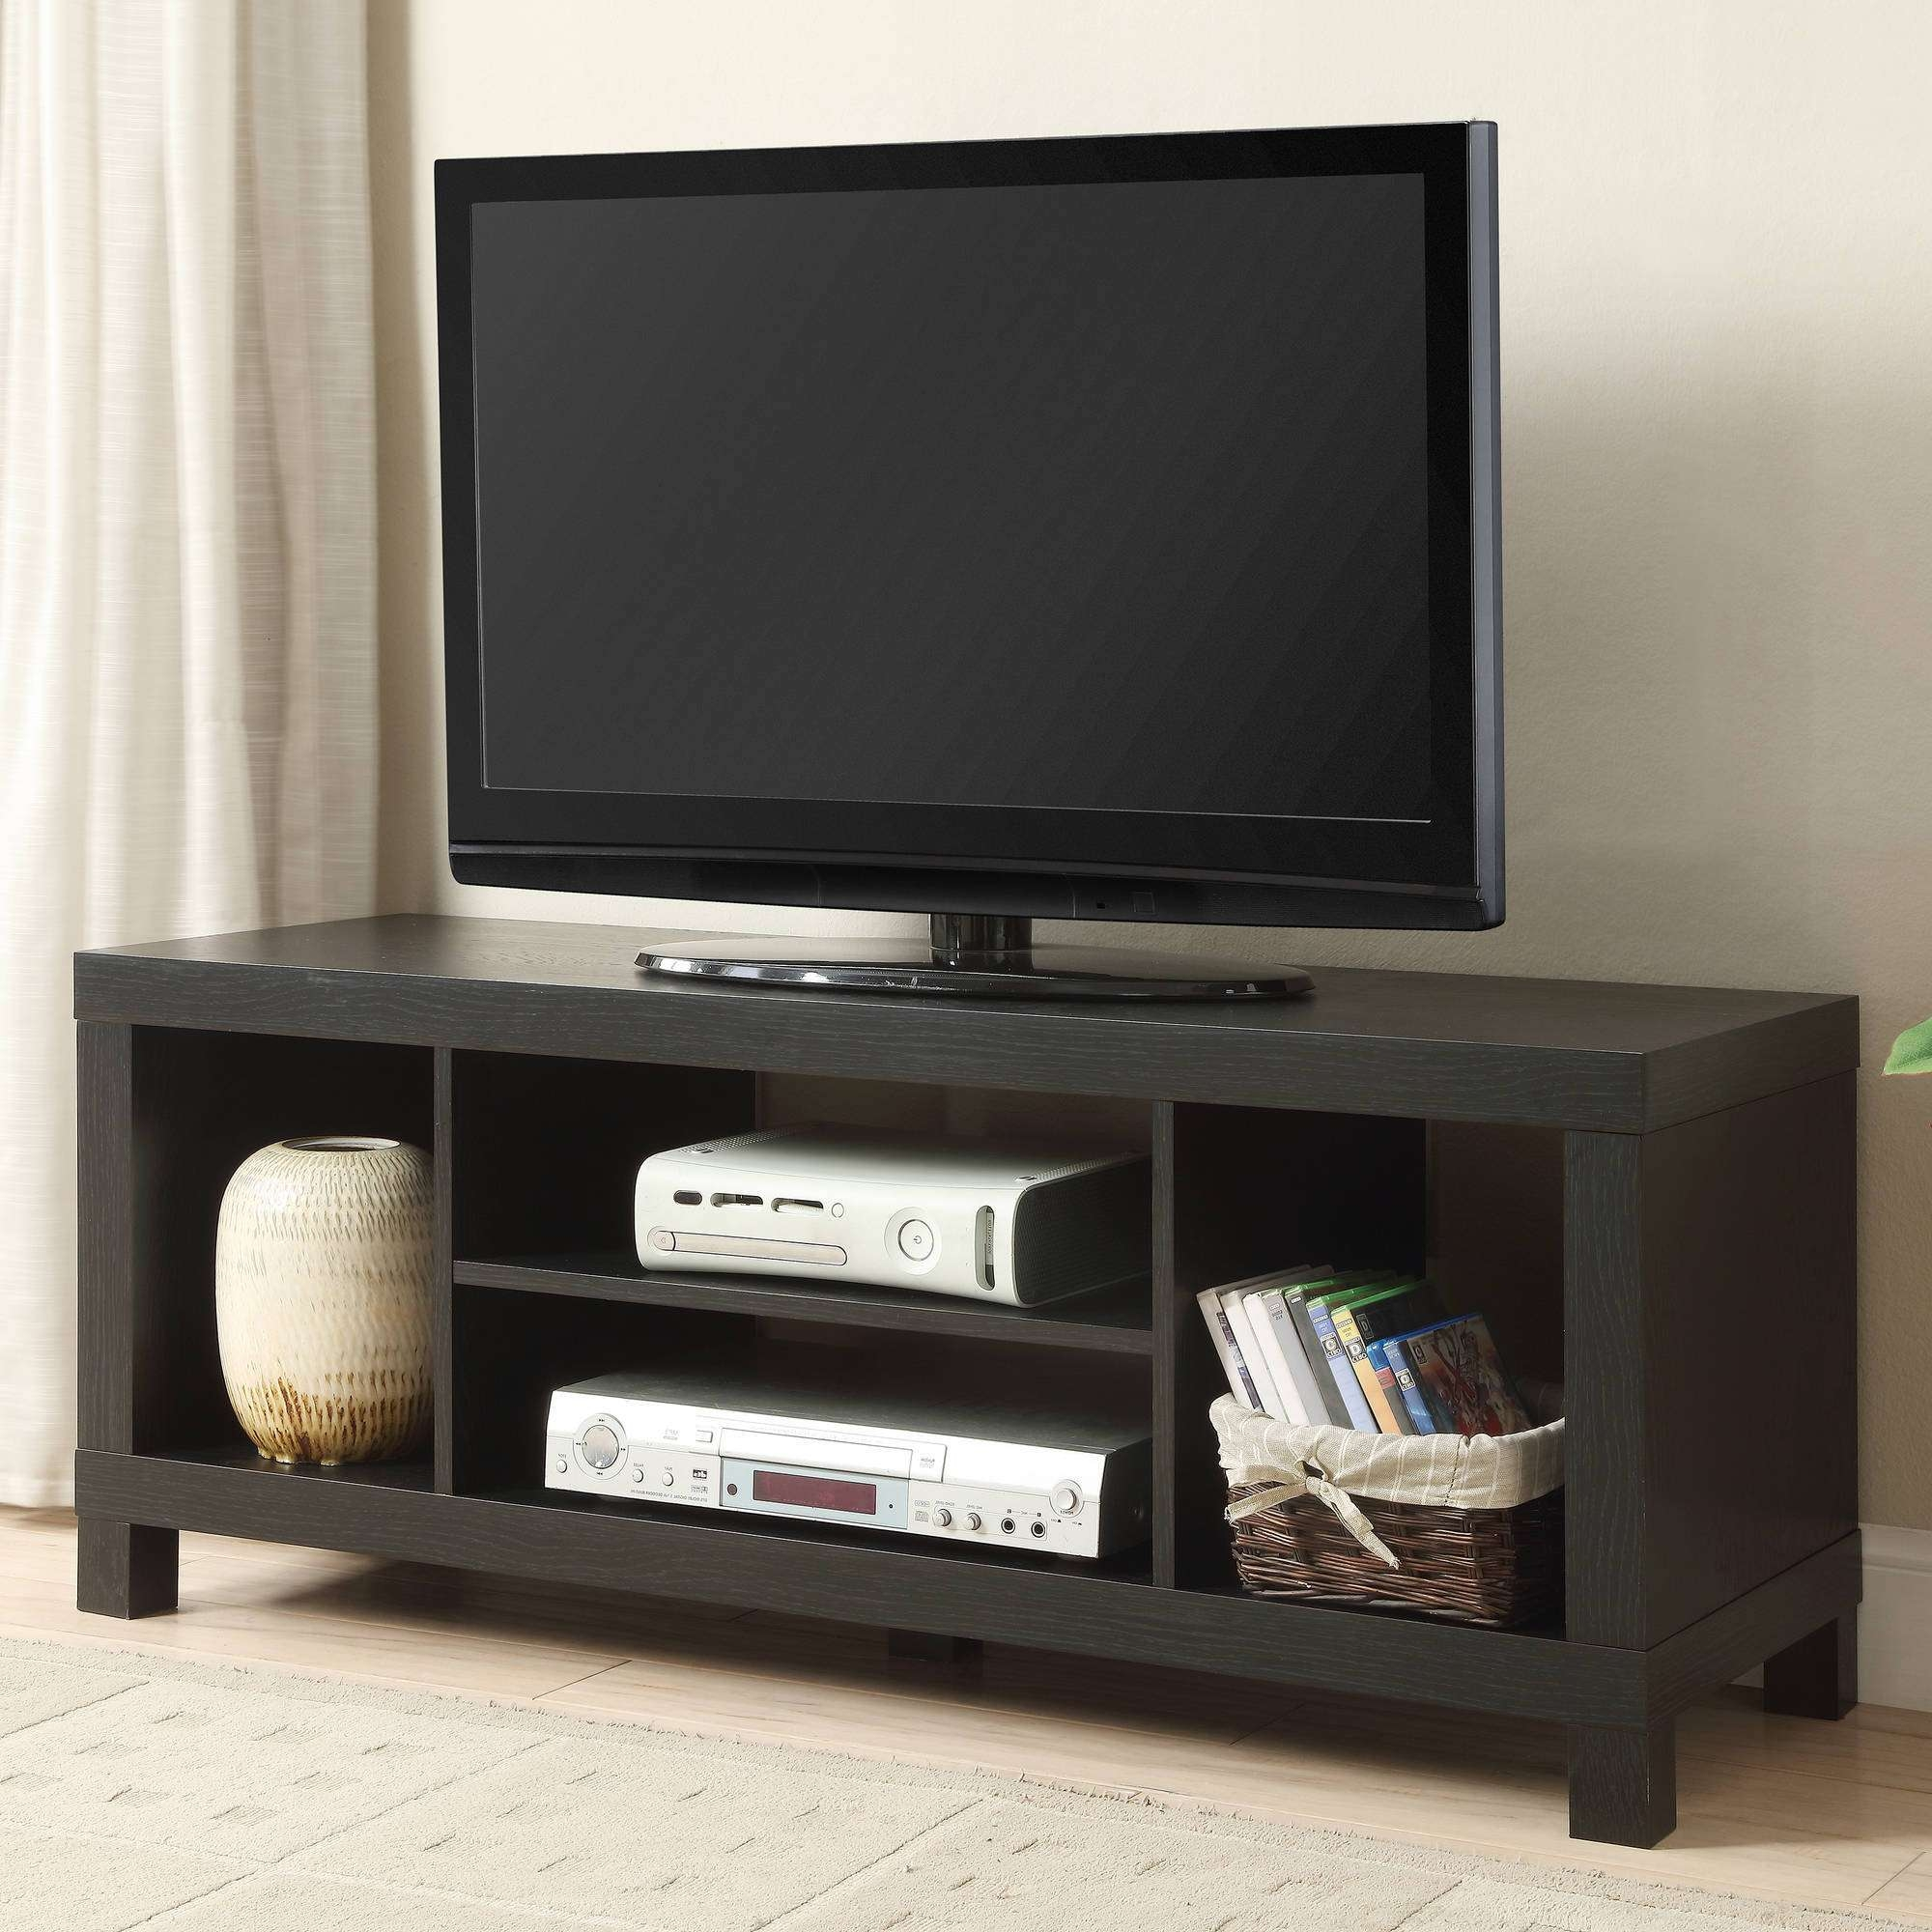 "Black Oak Tv Stand For Tvs Up To 42"" – Walmart With Tall Black Tv Cabinets (View 9 of 20)"